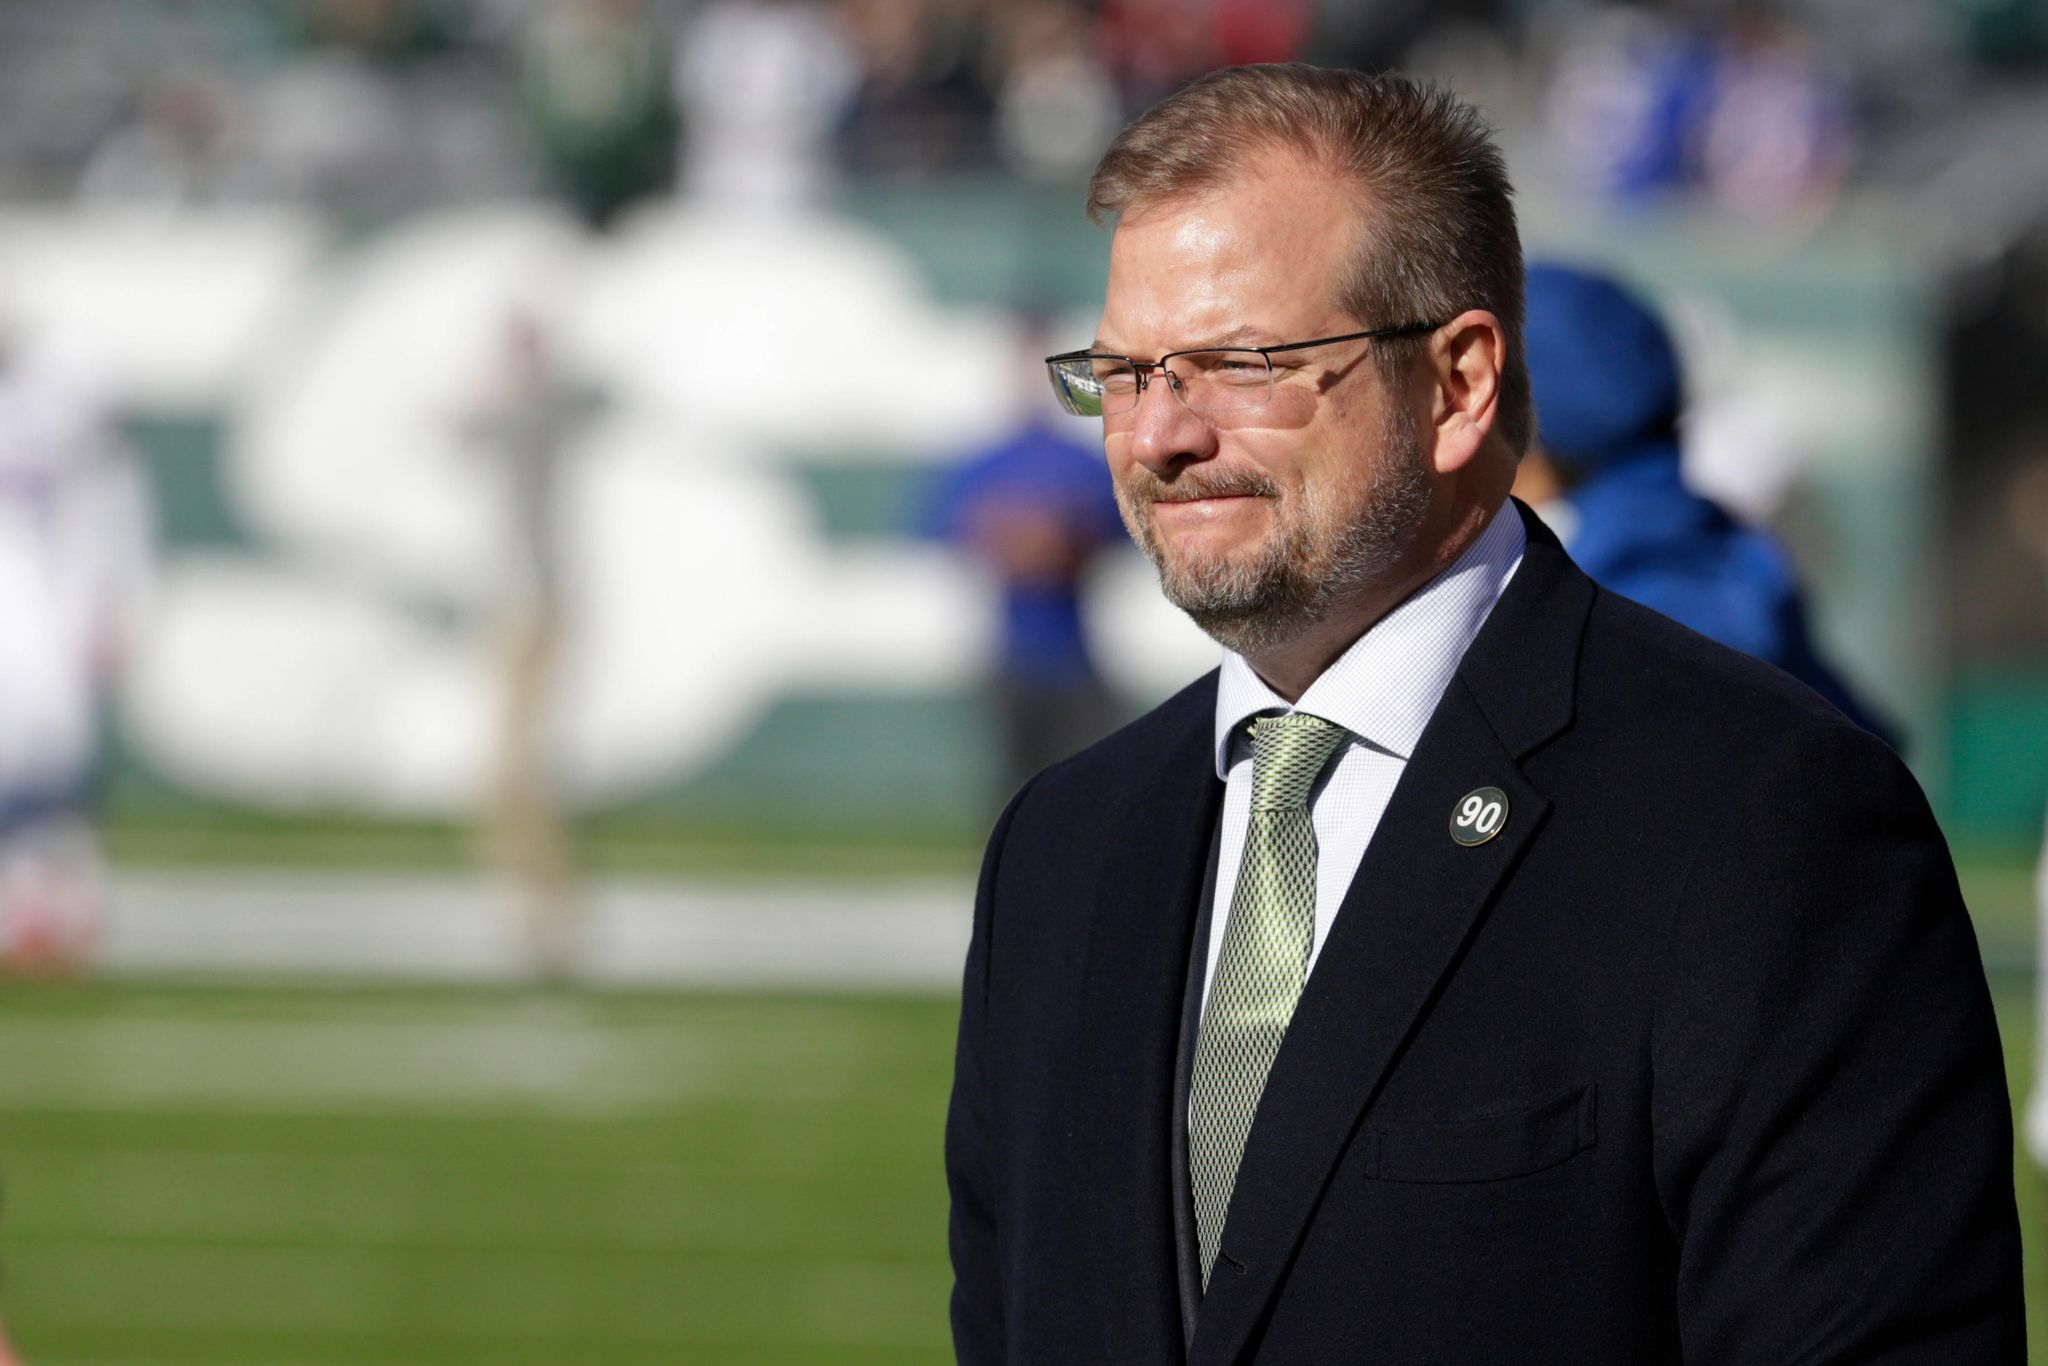 Draft_jets_preview_football_18682_s2048x1366